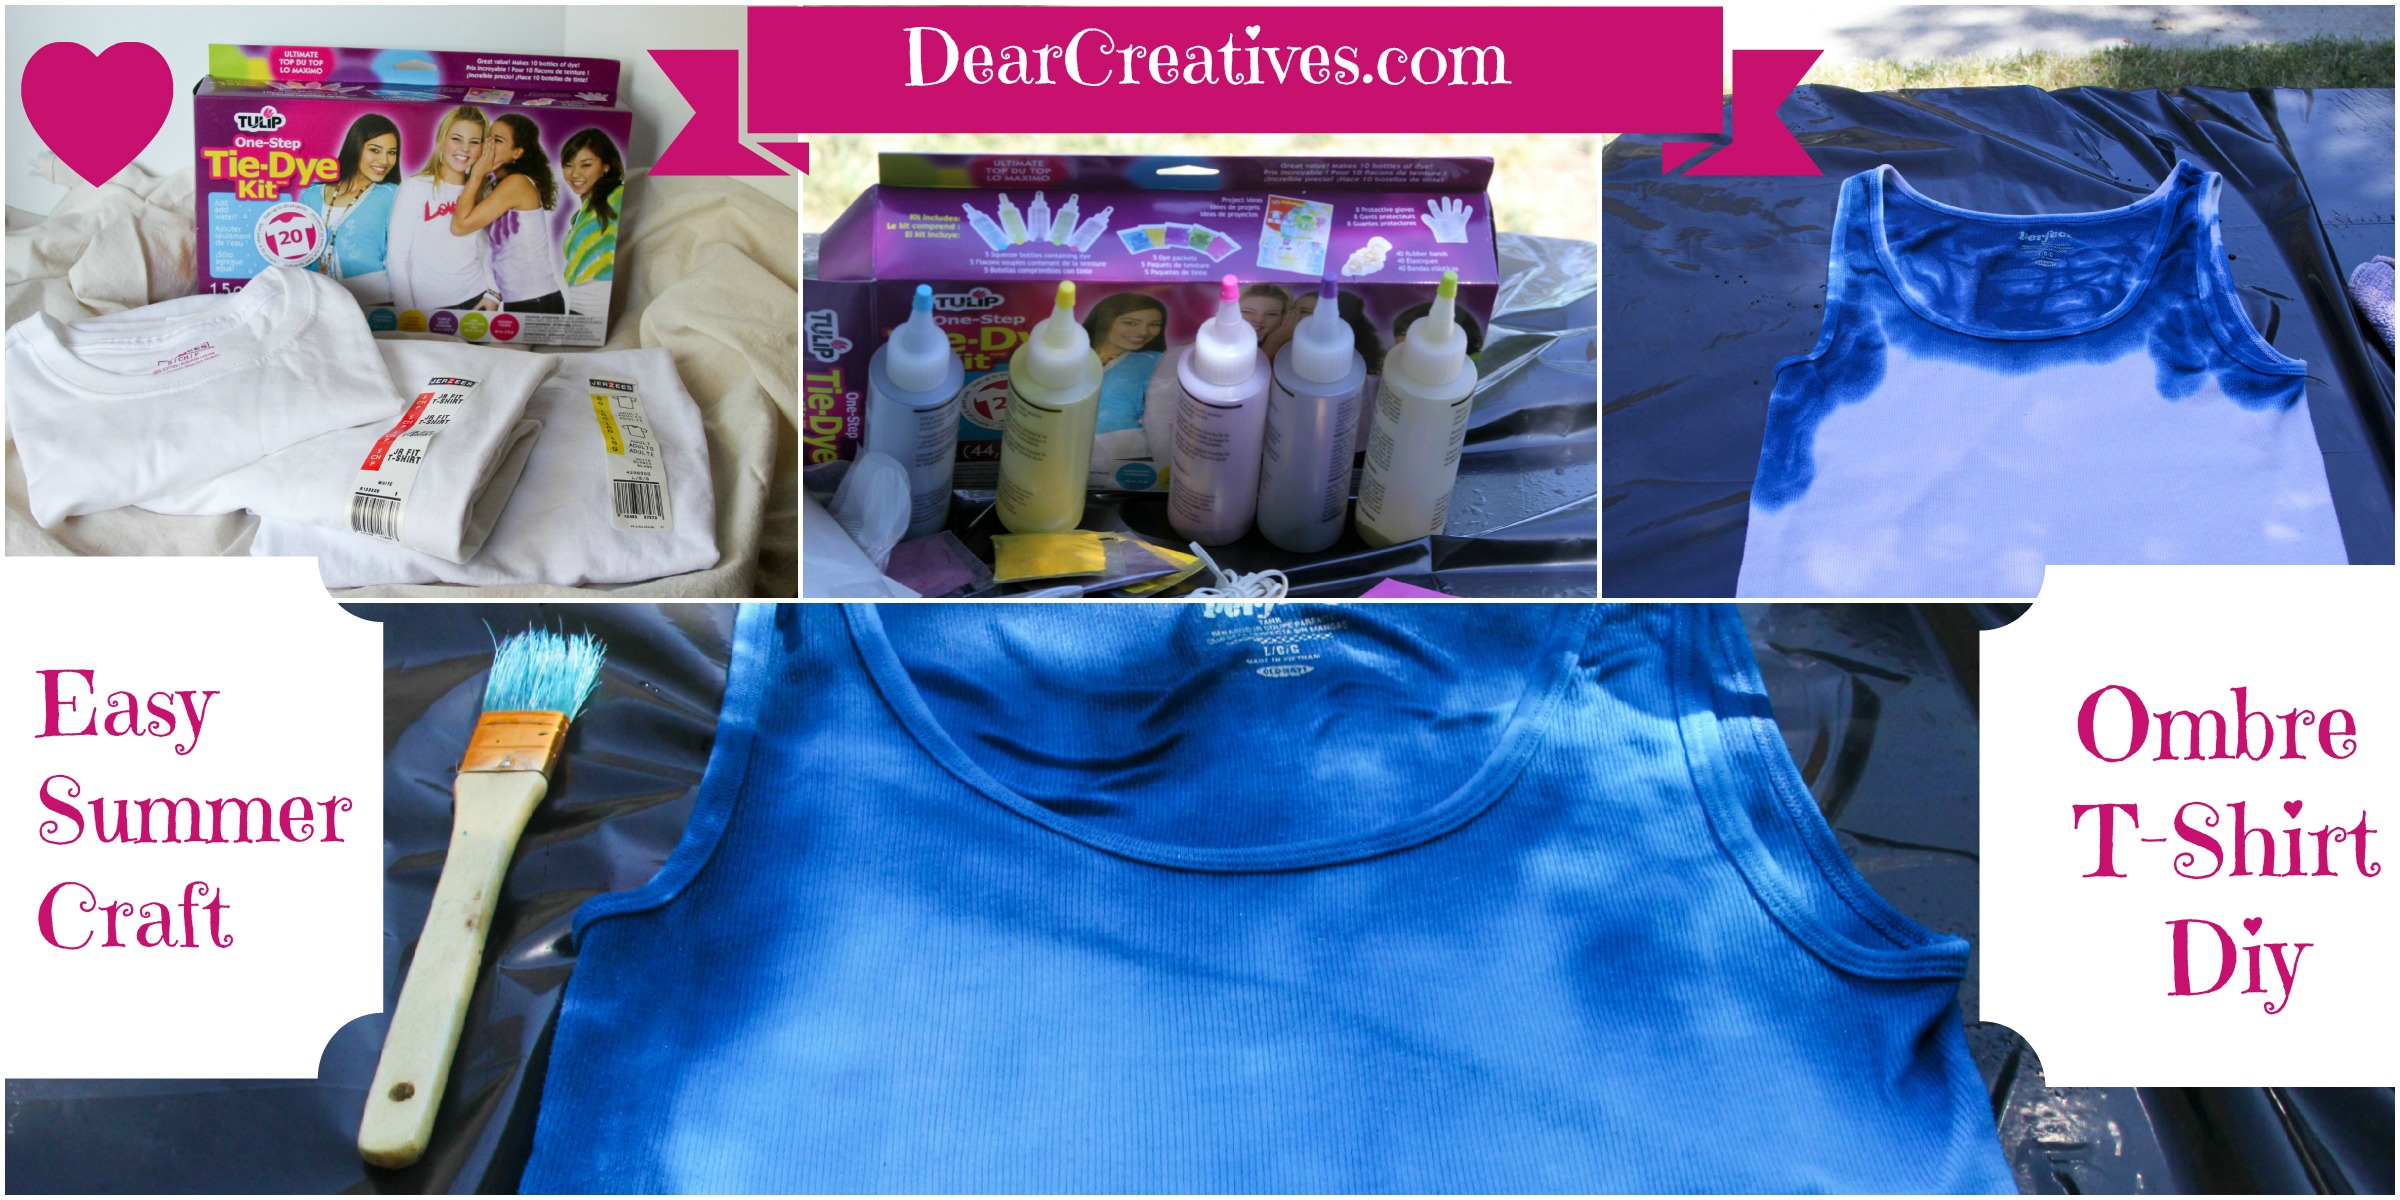 Easy Summer Craft Tulip Tie Dye Kit & Ombre Effect © 2013 Theresa Huse DearCreatives.com